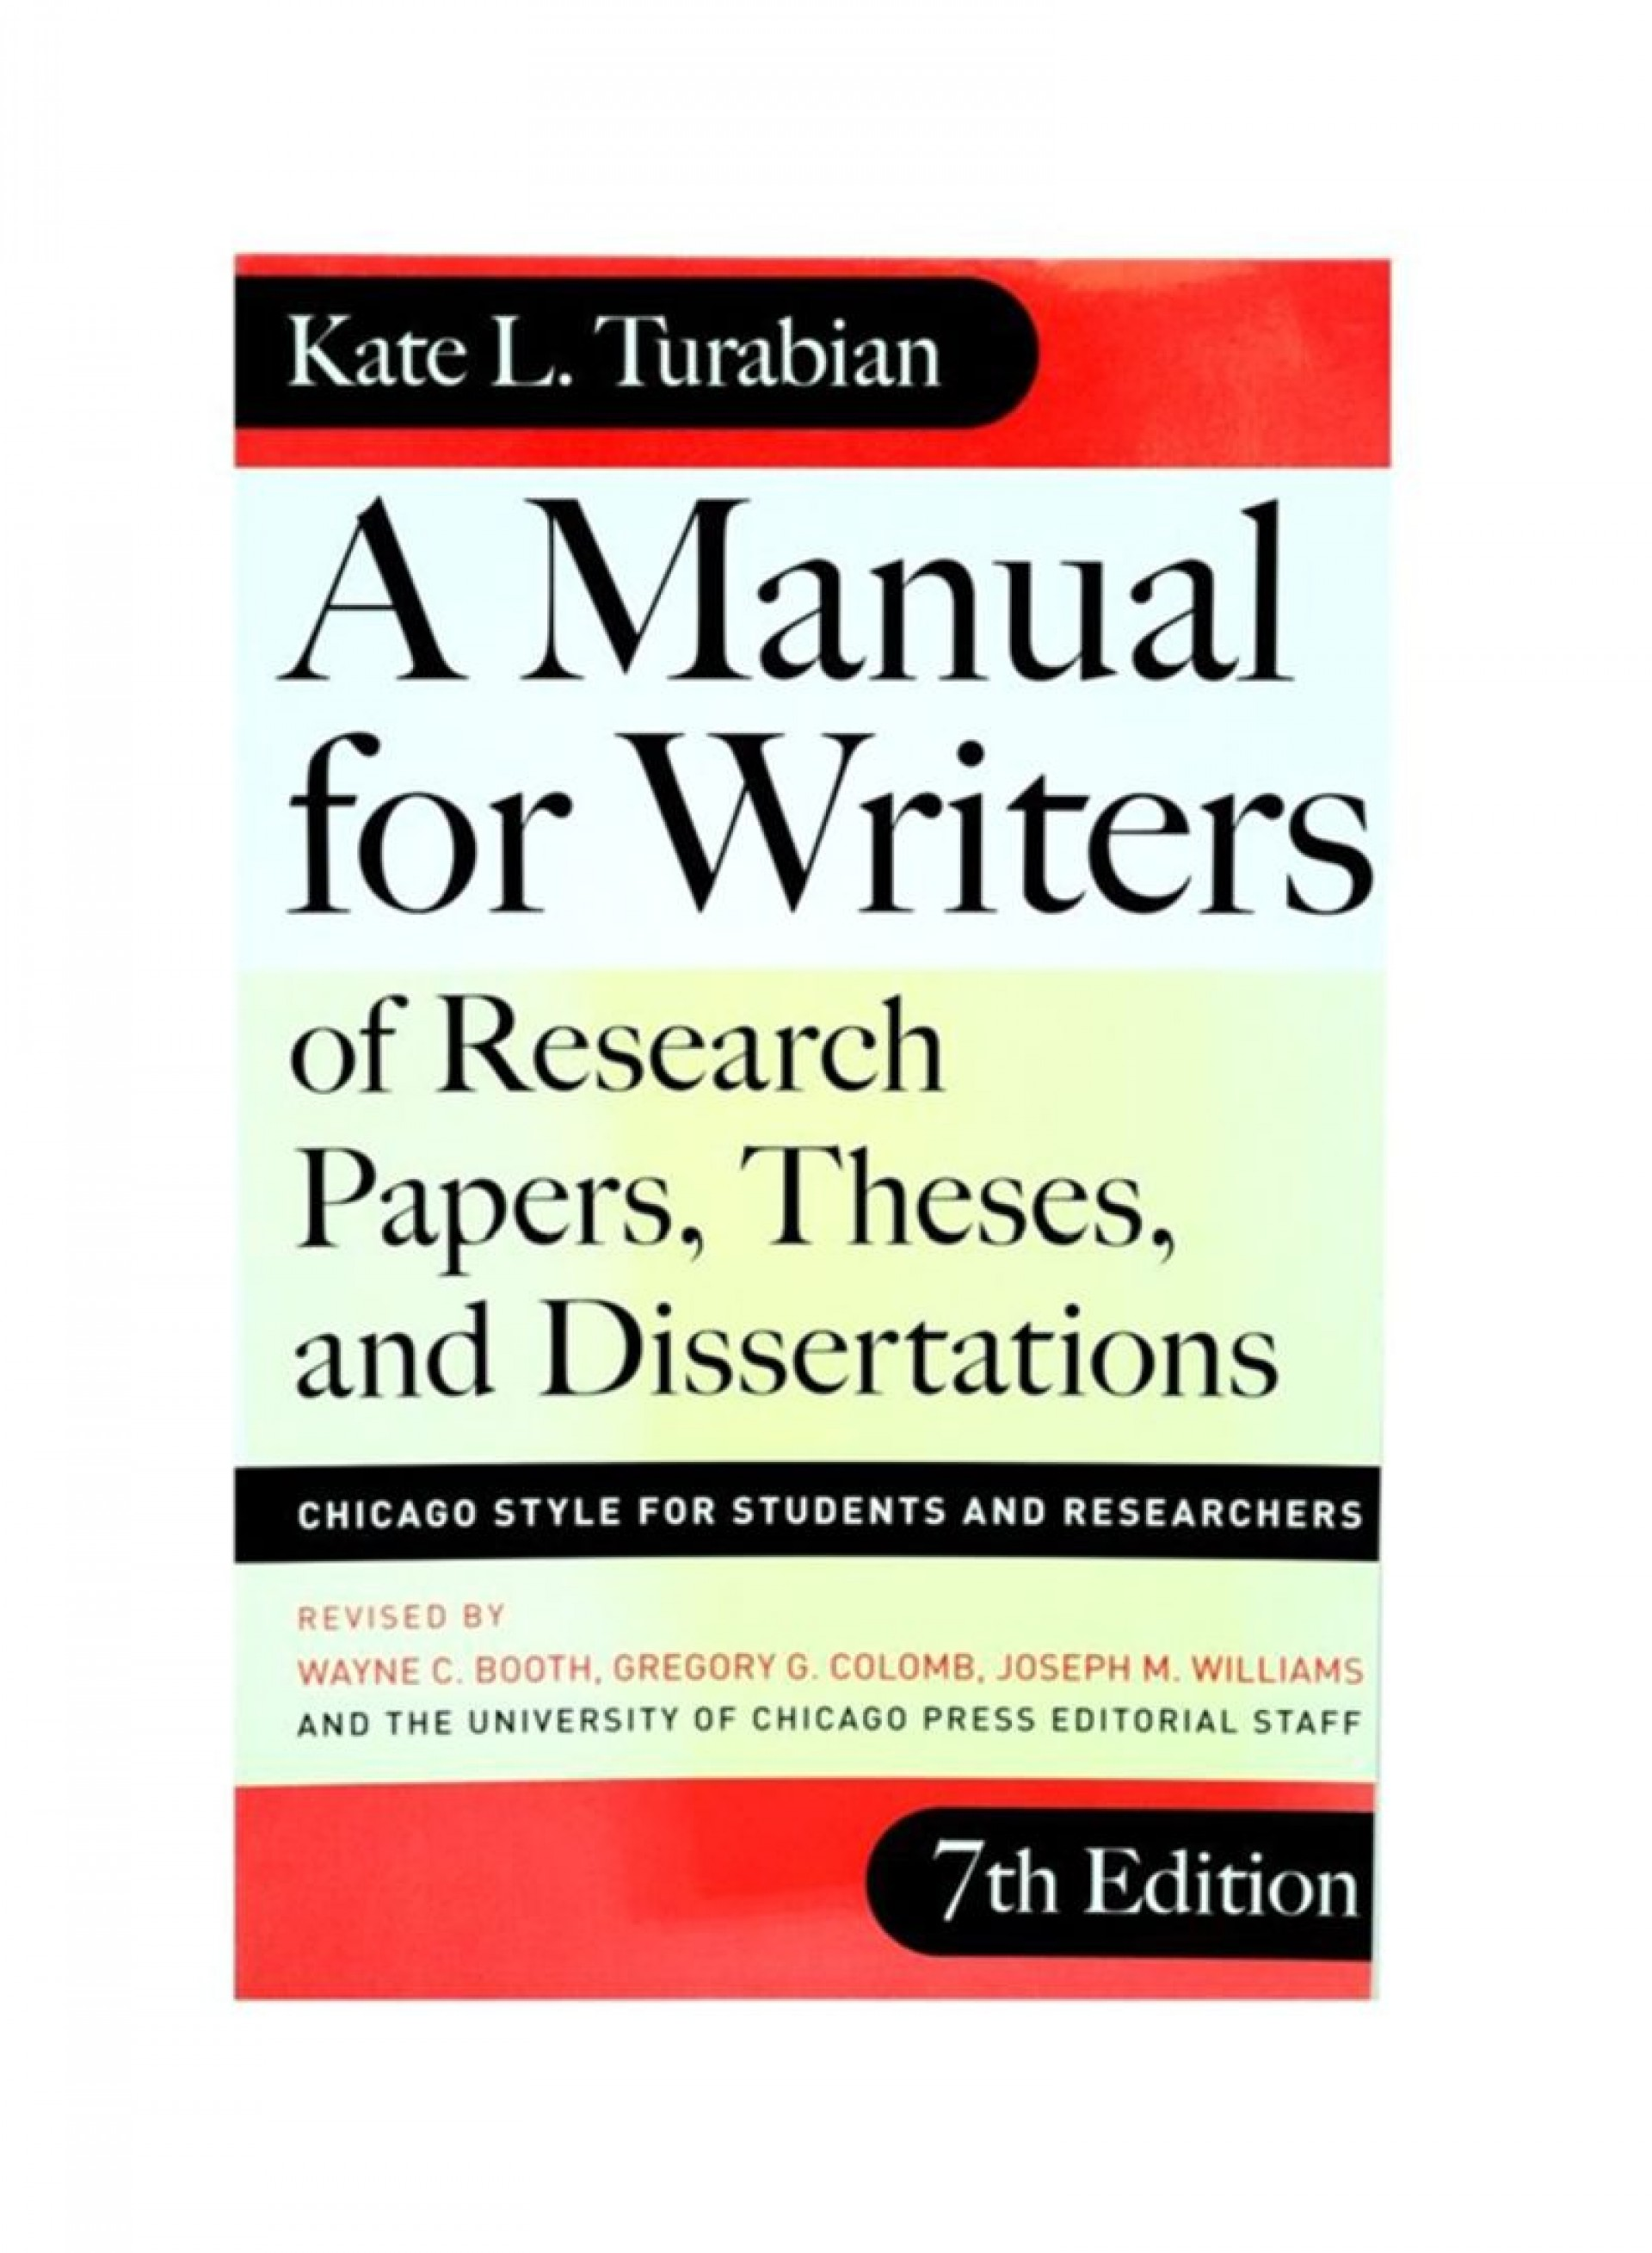 021 Research Paper N21270079a 1 Manual For Writers Of Papers Theses And Magnificent Dissertations A Amazon 9th Edition 8th 13 1920